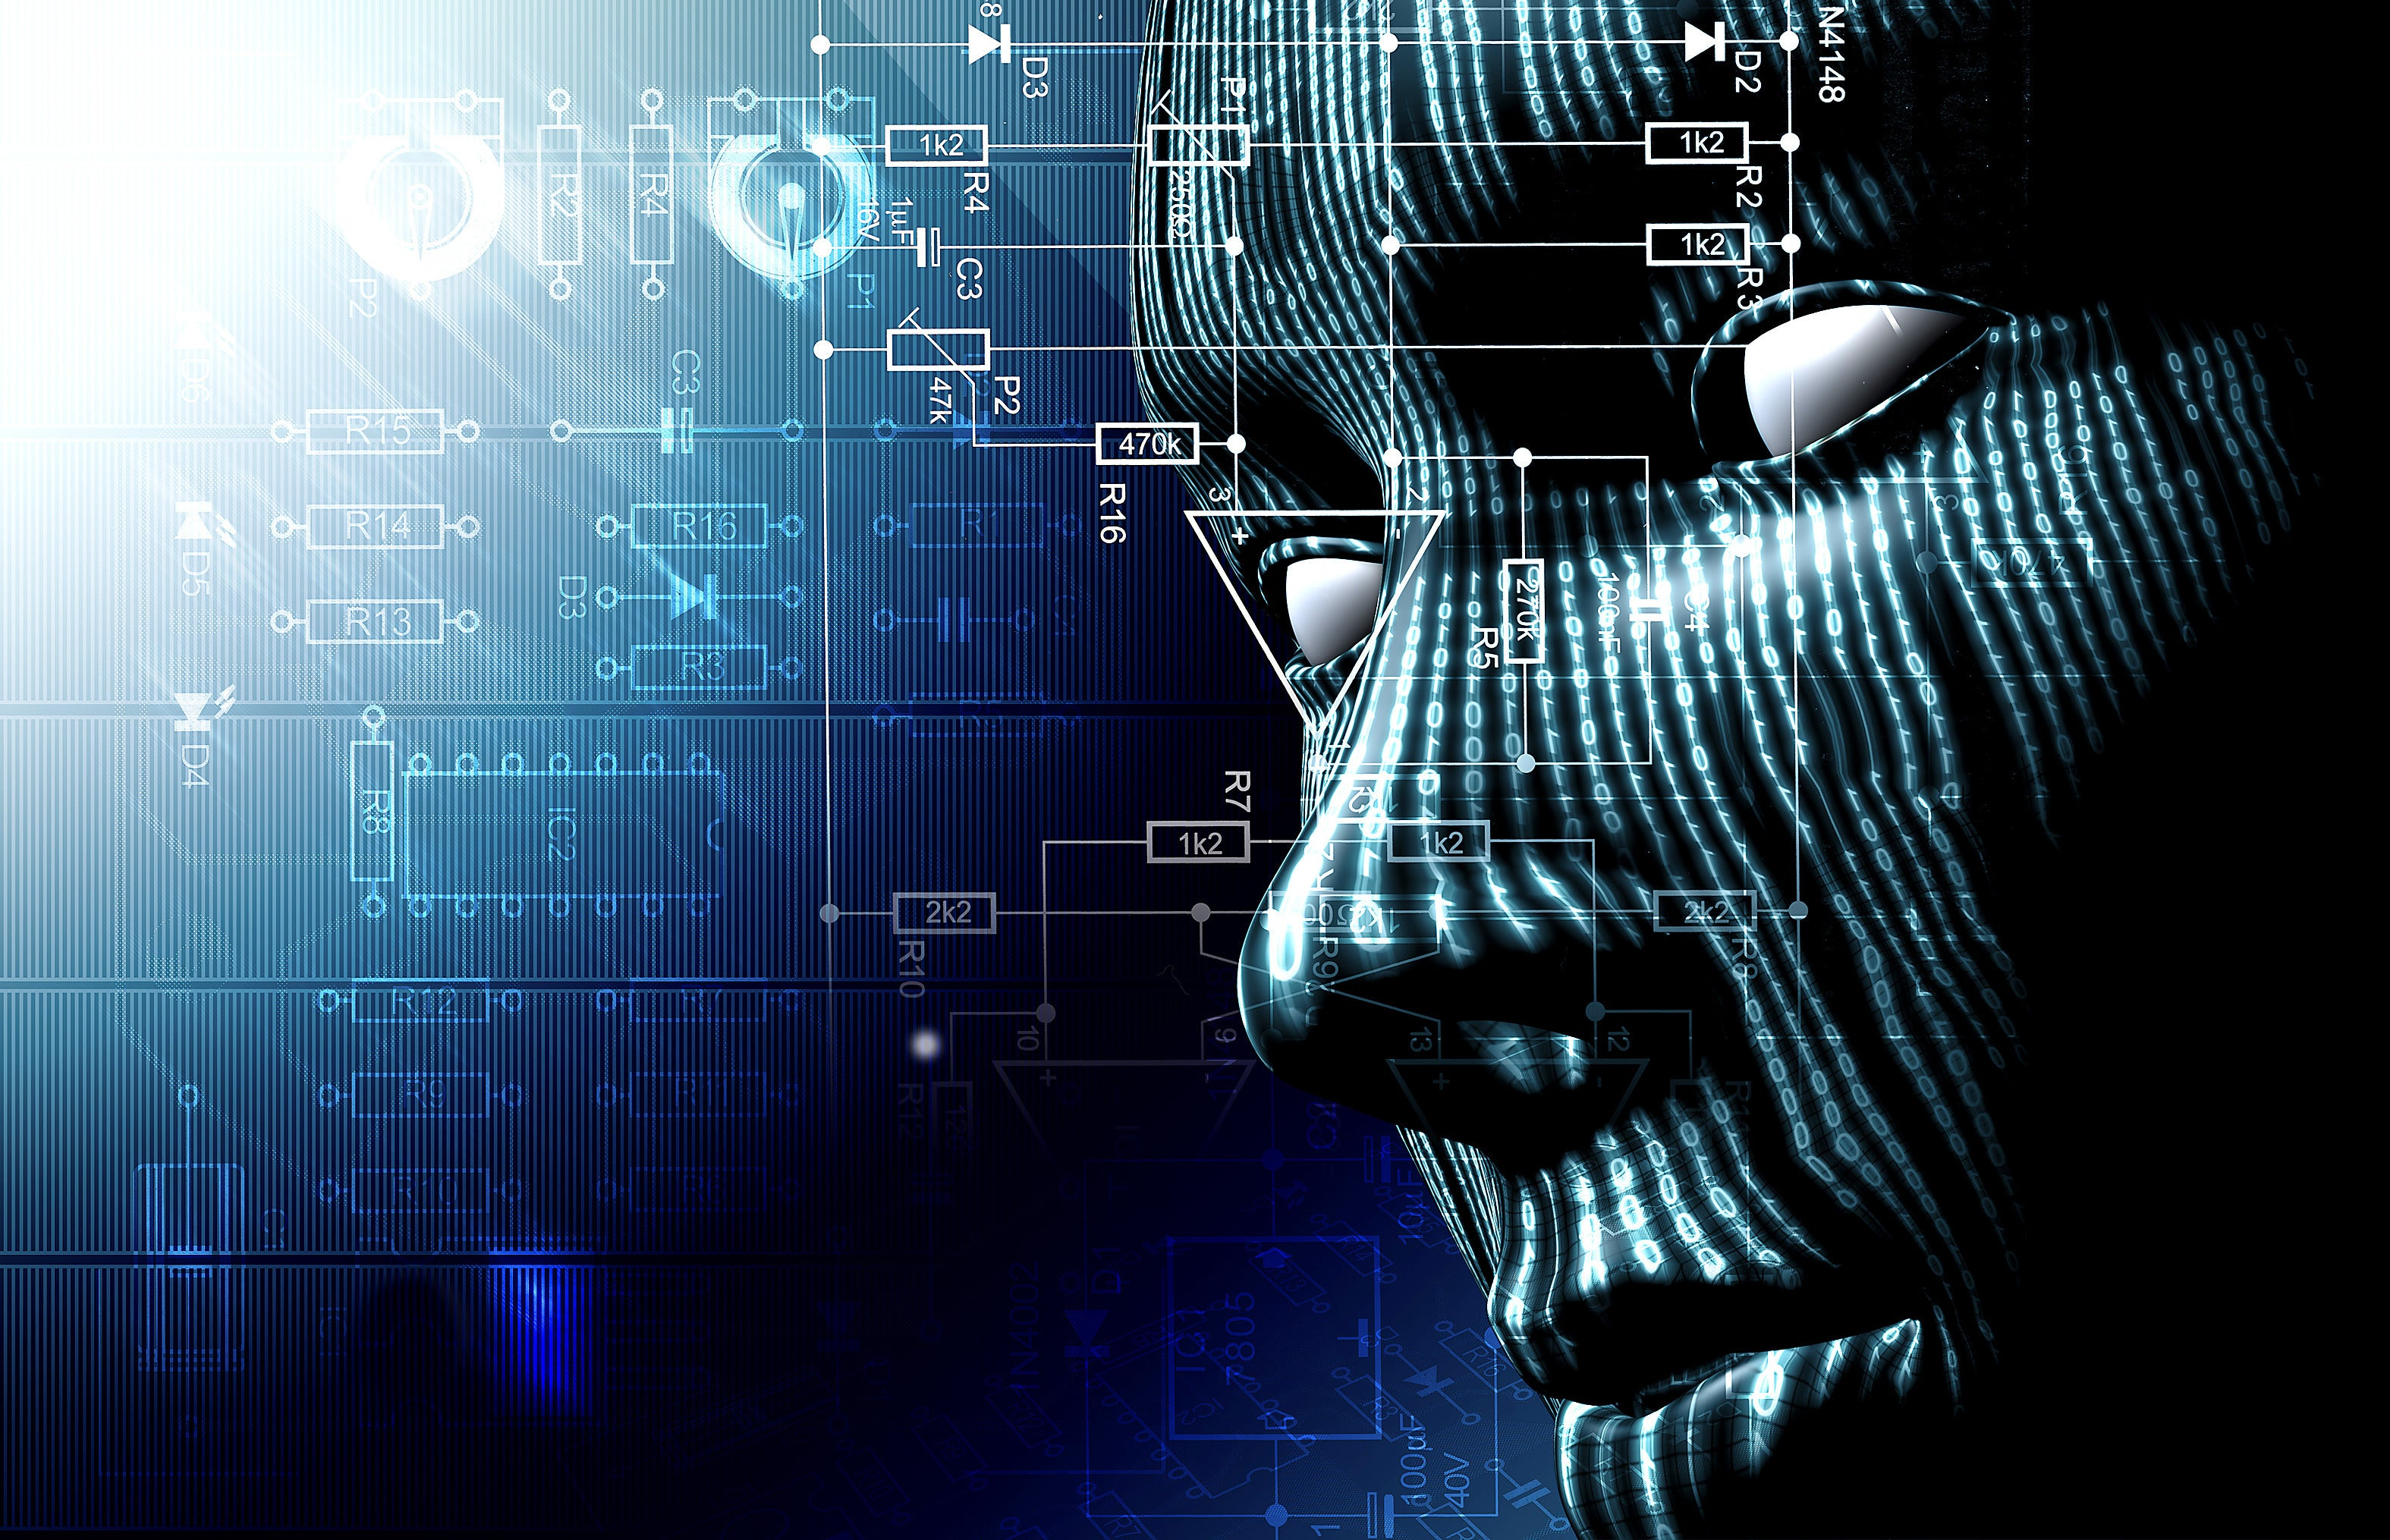 Virtual face of artificial intelligence circuits and binary data